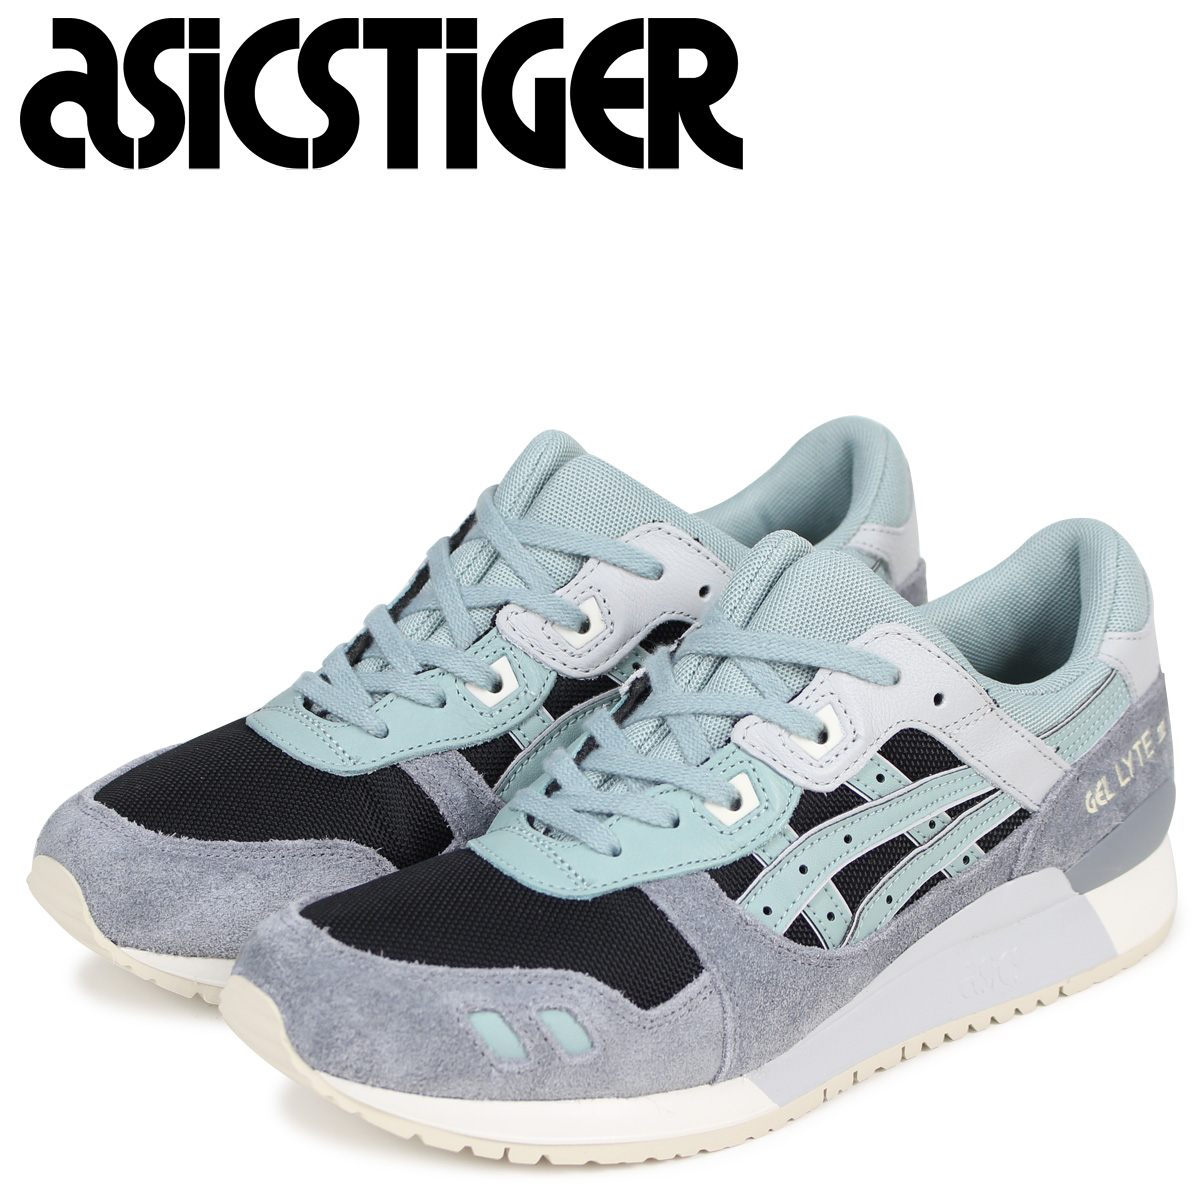 acheter en ligne ddc58 7a841 asics Tiger ASICS tiger gel light 3 sneakers GEL-LYTE III H820L-9046 men  blue